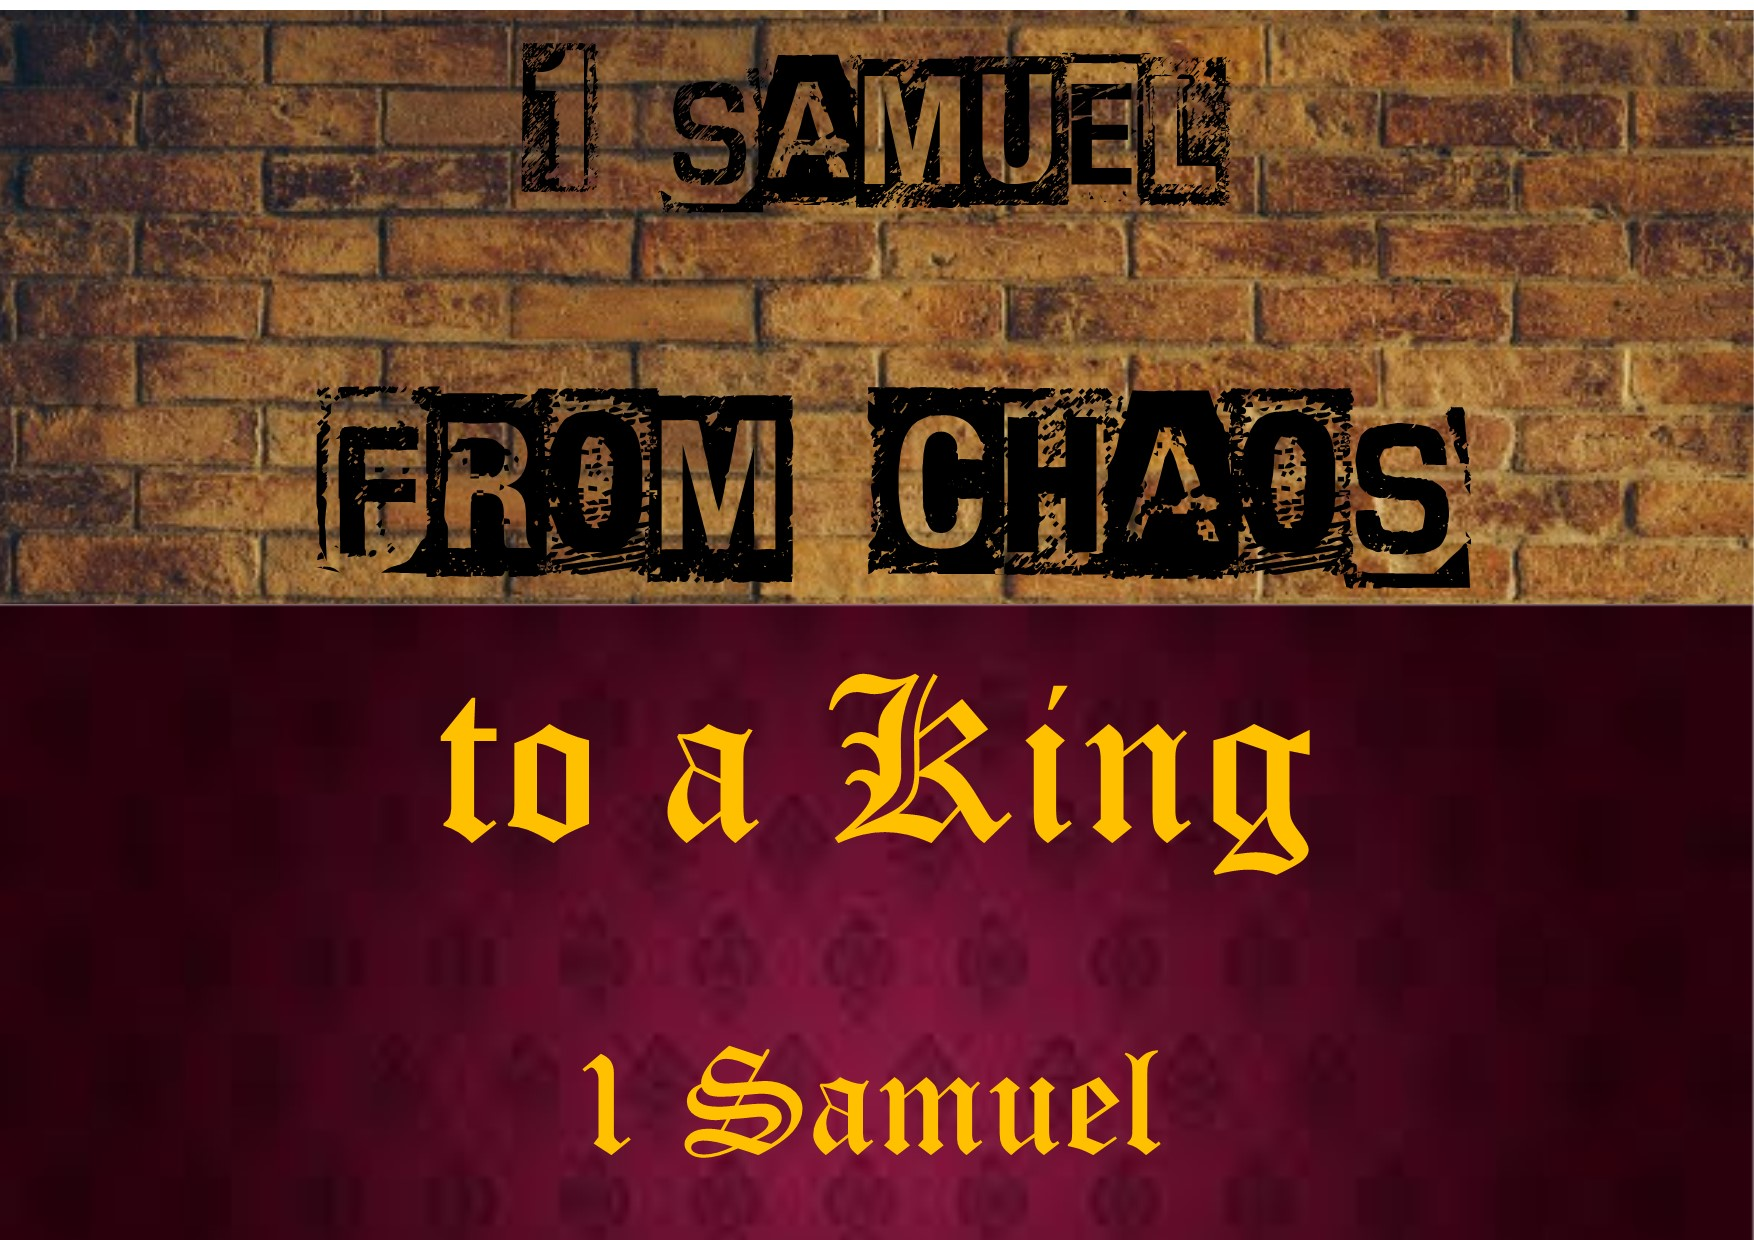 From chaos to a King banner